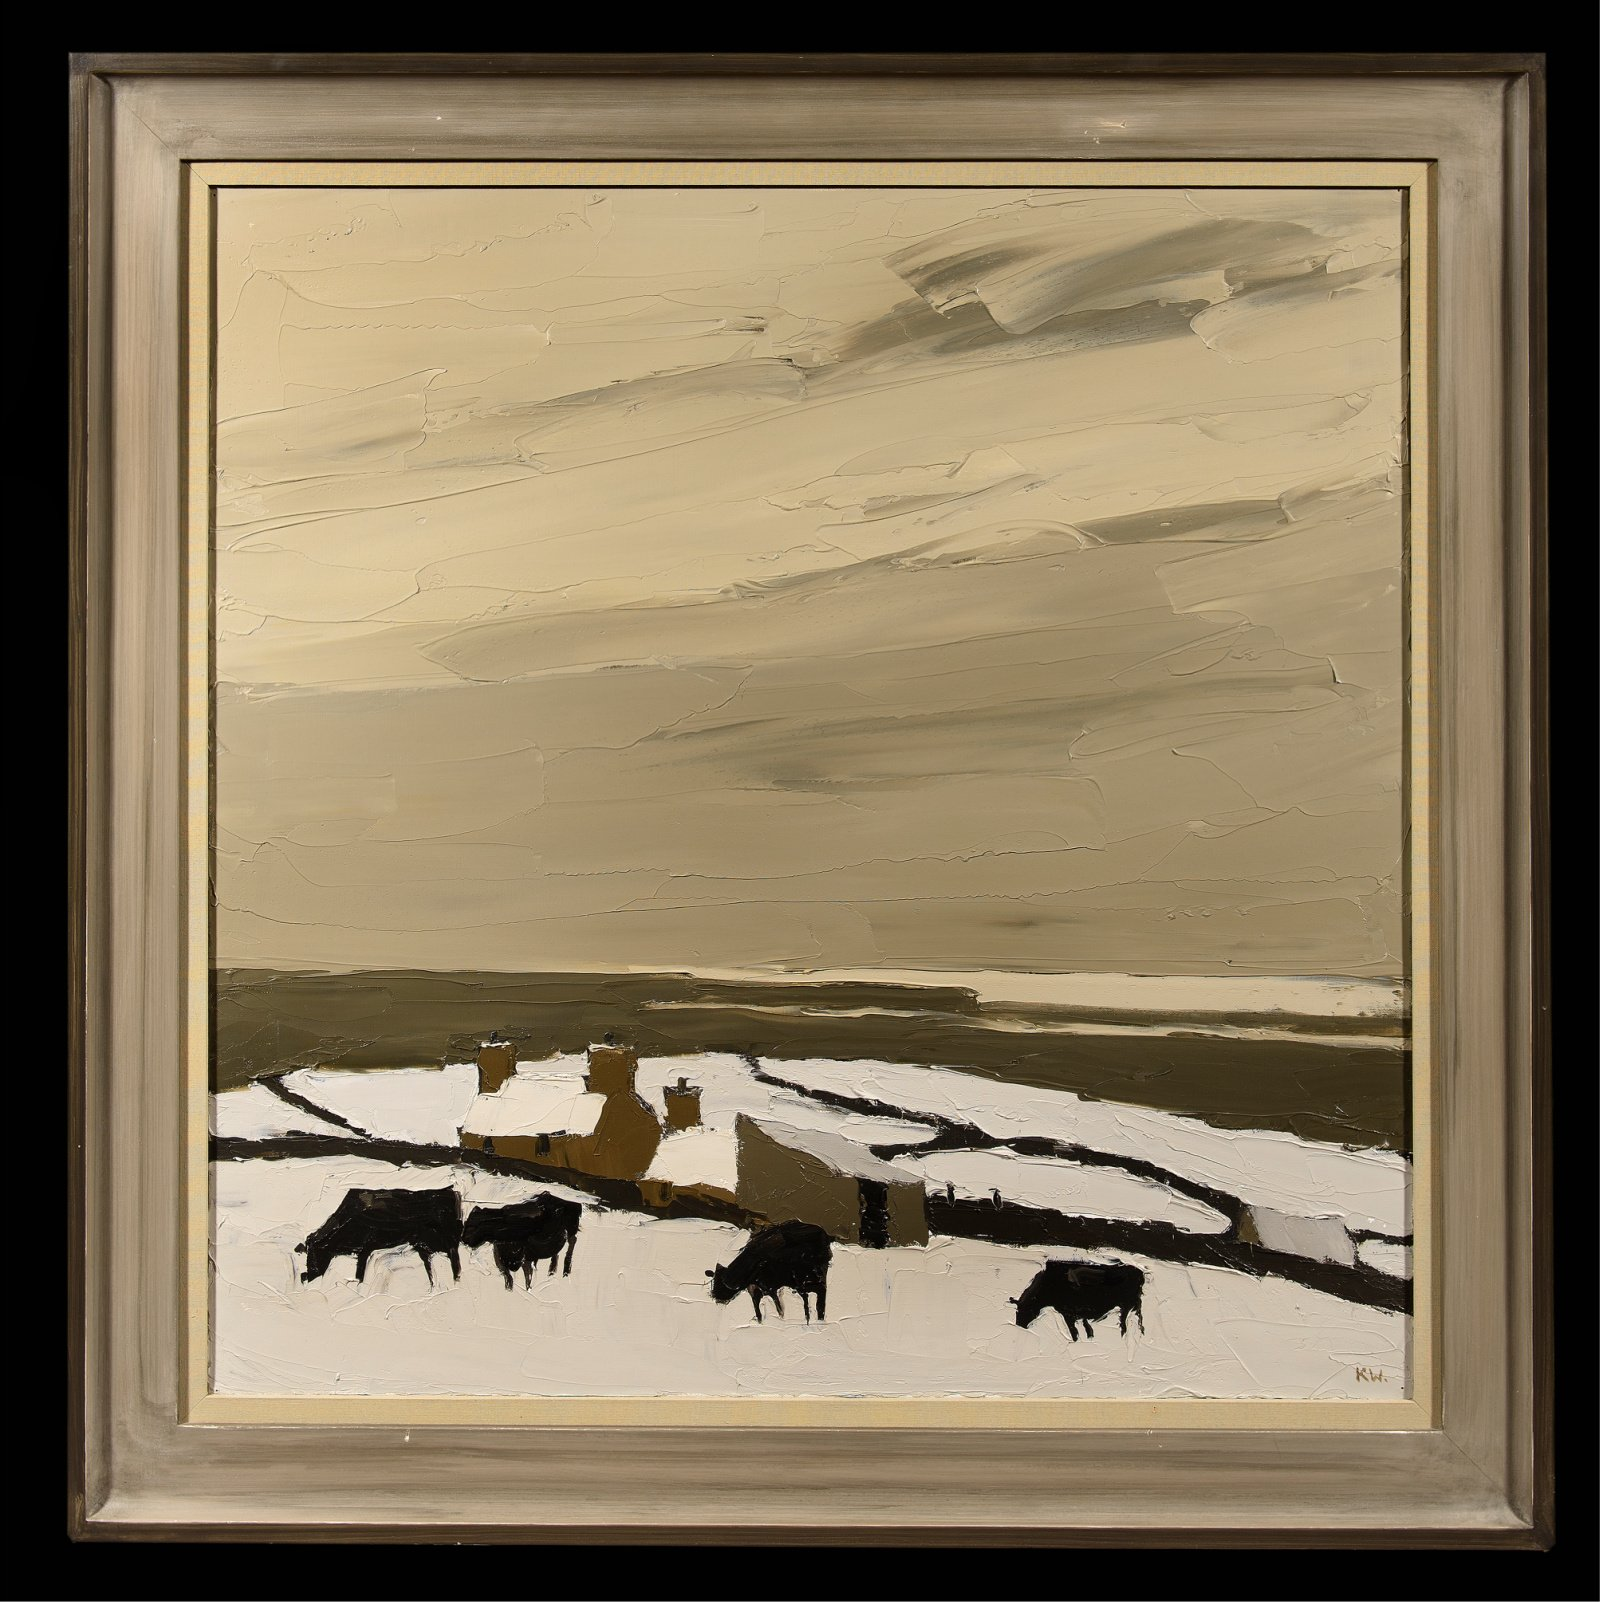 landscape of a hill covered in snow with cattle grazing on top and moody sky in the background